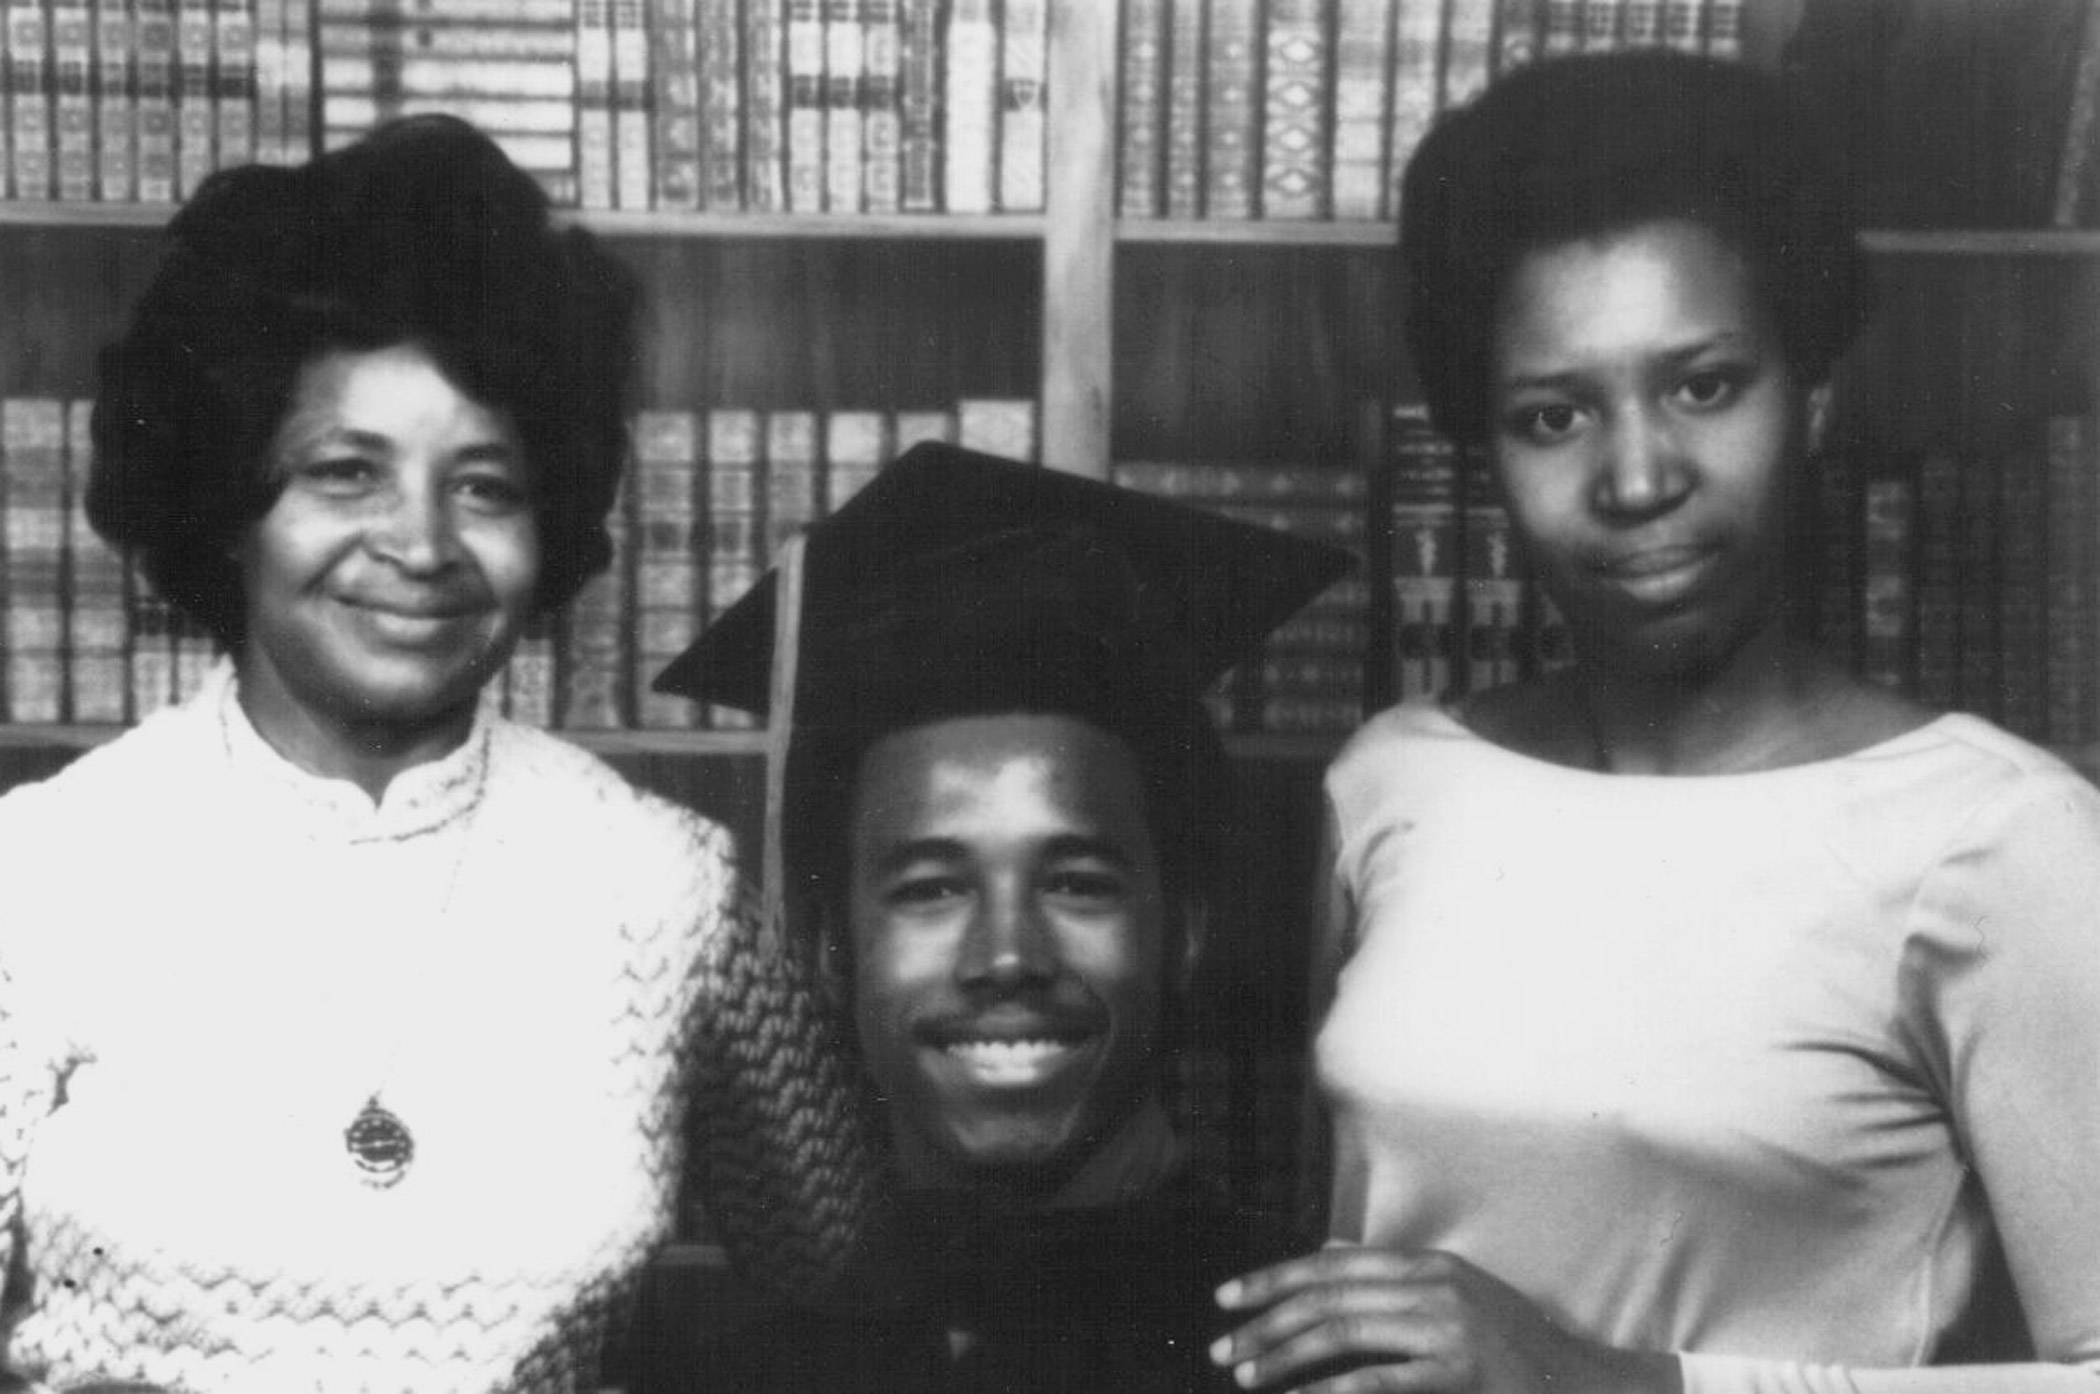 Ben Carson with his mother, Sonya, and his future wife, Candy after his graduation from Yale University, circa 1973.